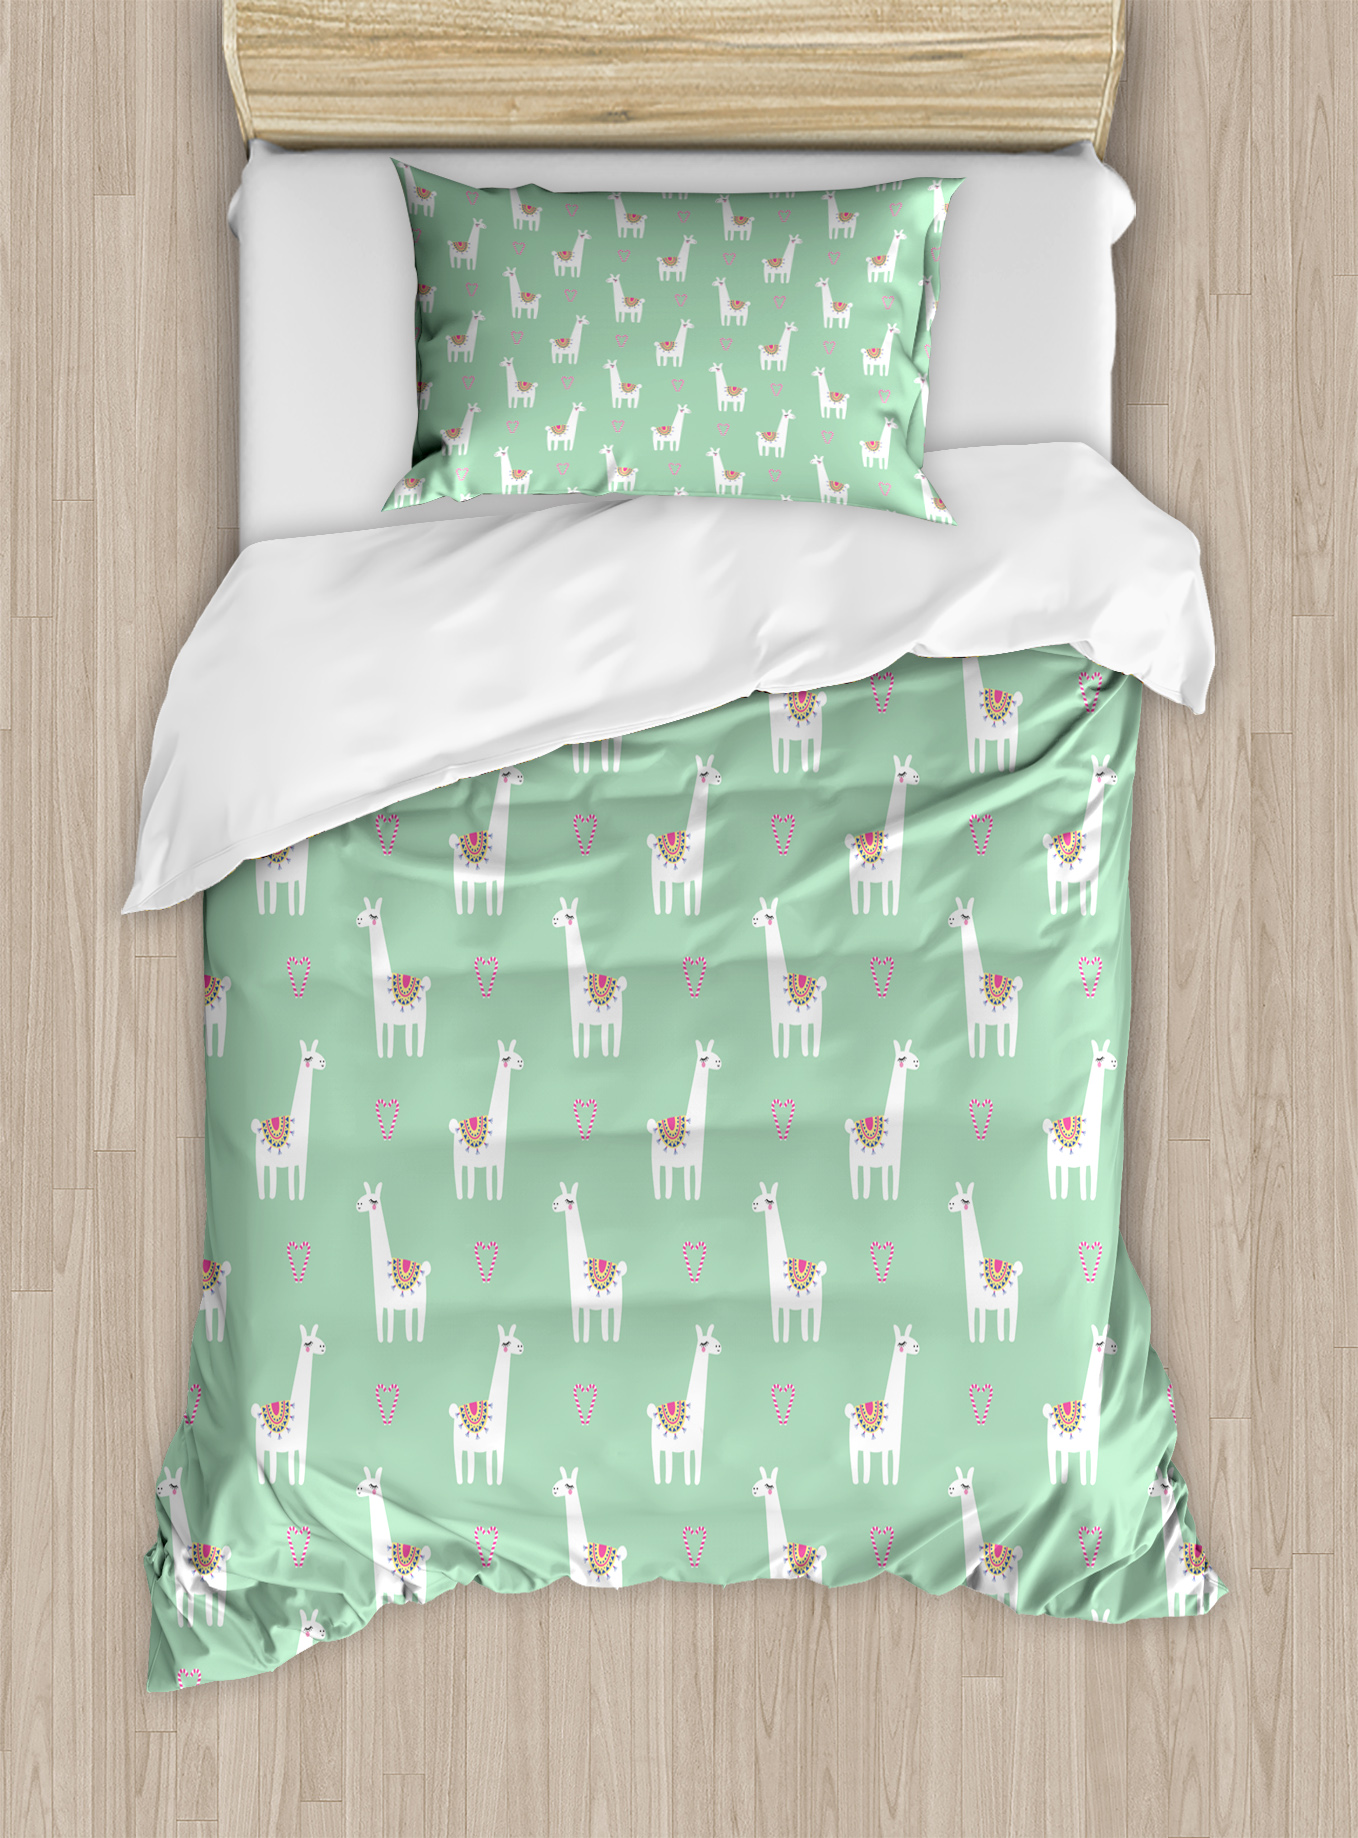 Llama Twin Size Duvet Cover Set Cute Llama With Candy